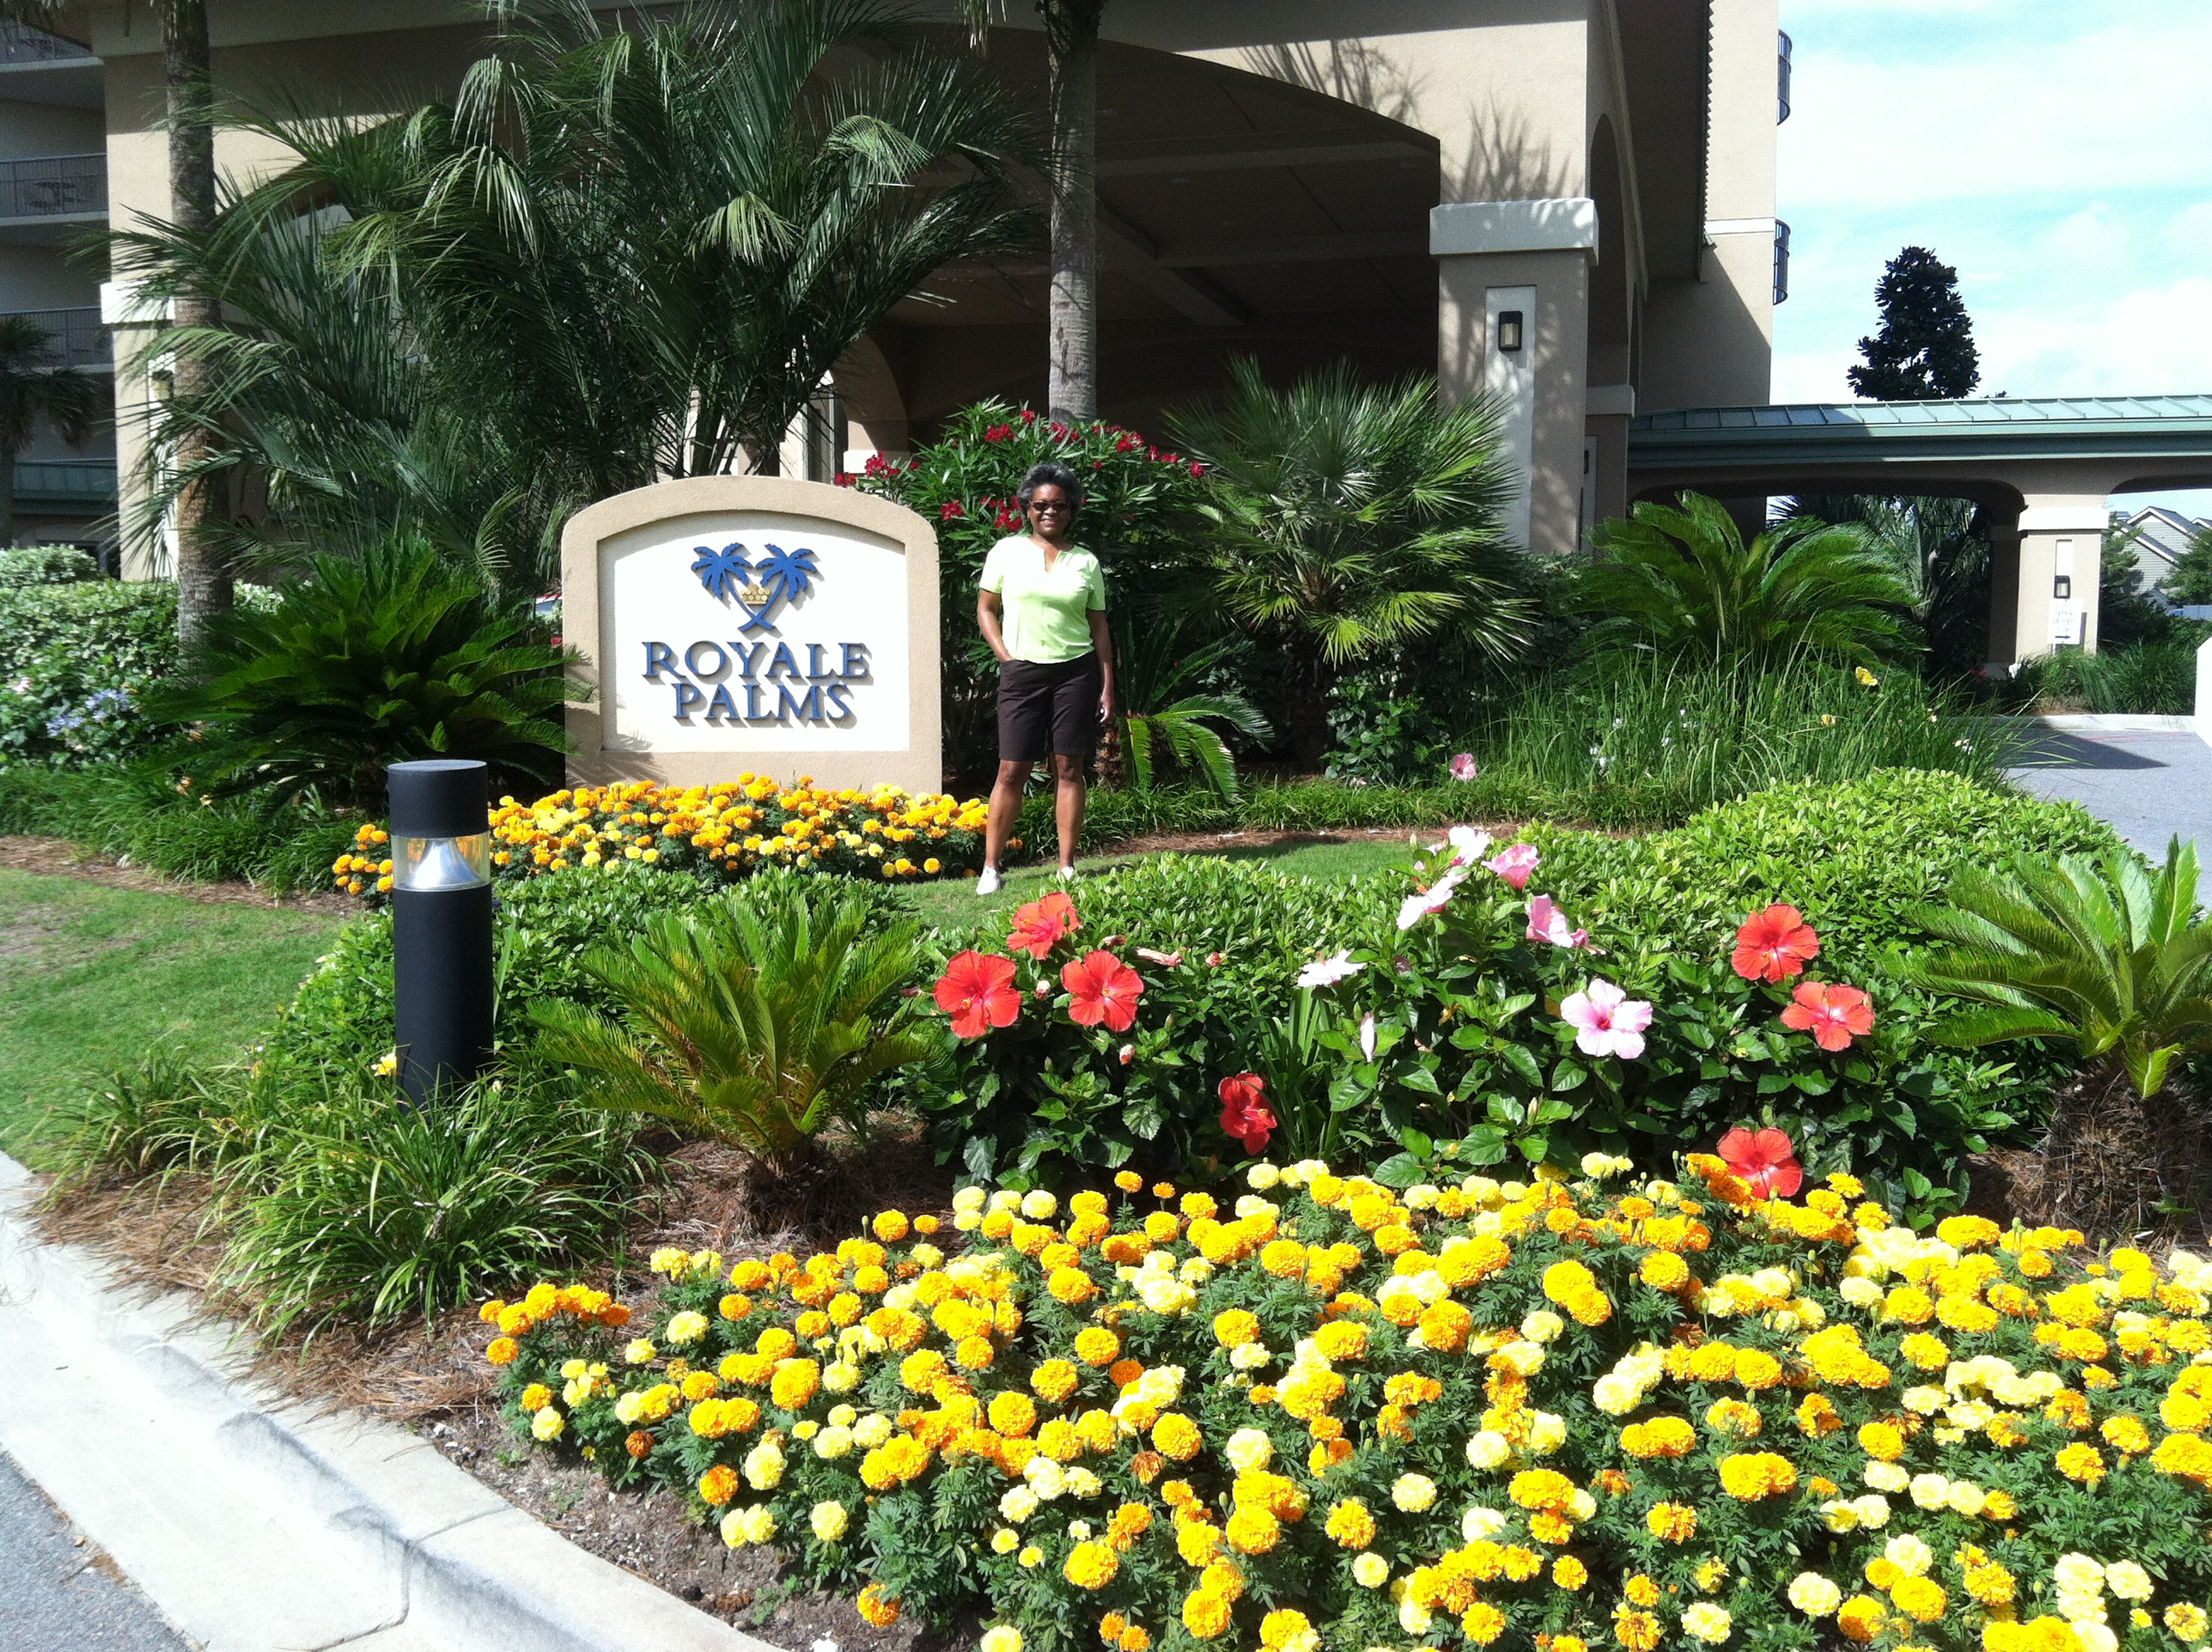 Brynn at Royale Palms in Myrtle Beach how to garden beginner gardener